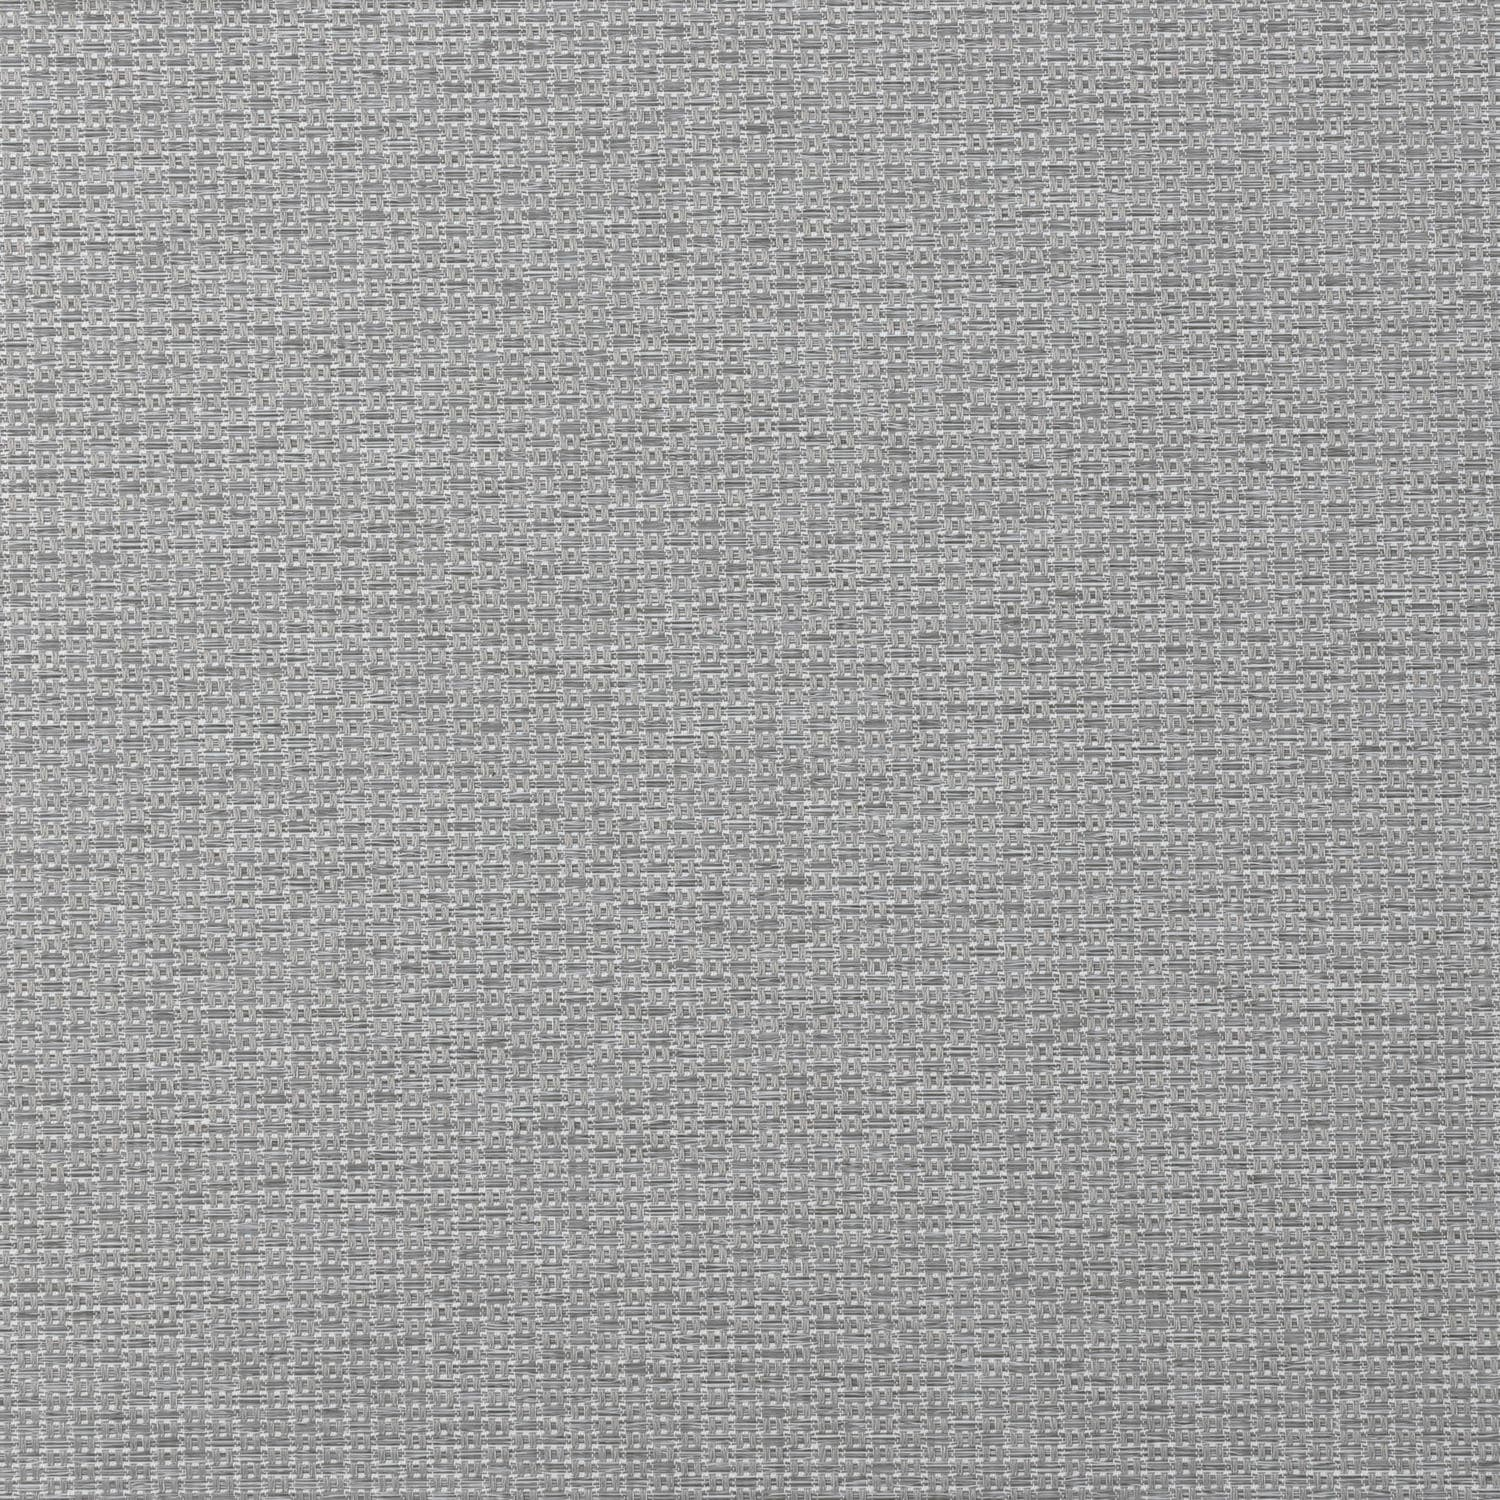 Rockland Silver BasketWeave Textured Blackout Roller Shade Swatch